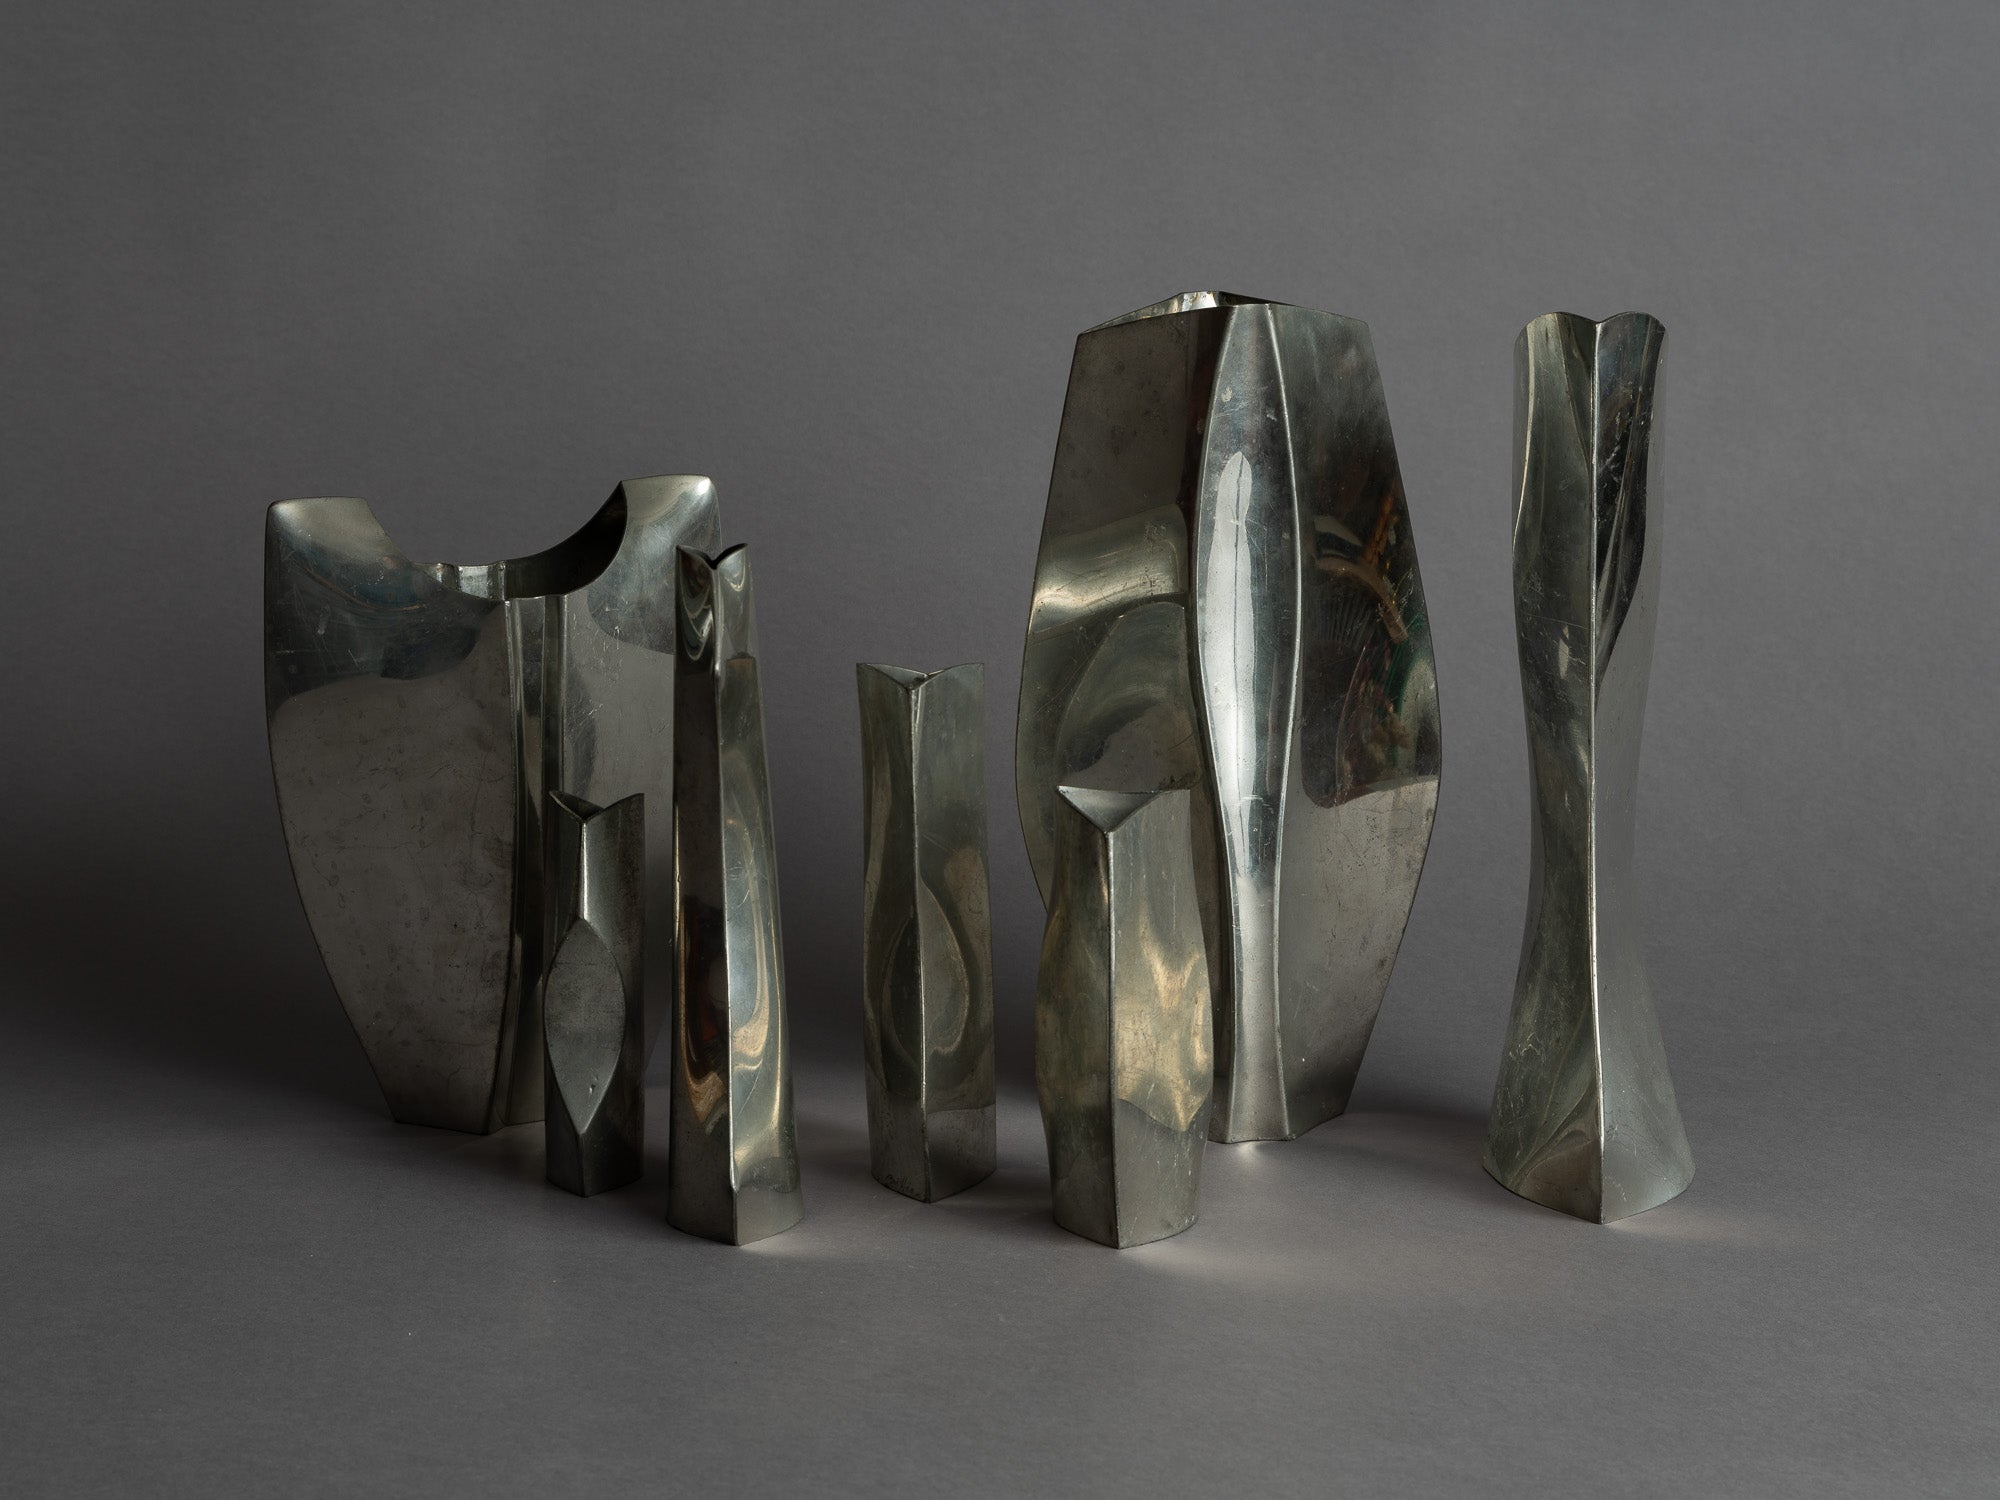 Rare ensemble de vases en étain de forme libre, France (vers 1965)..Rare Set of freeform pewter vases, France (circa 1965)